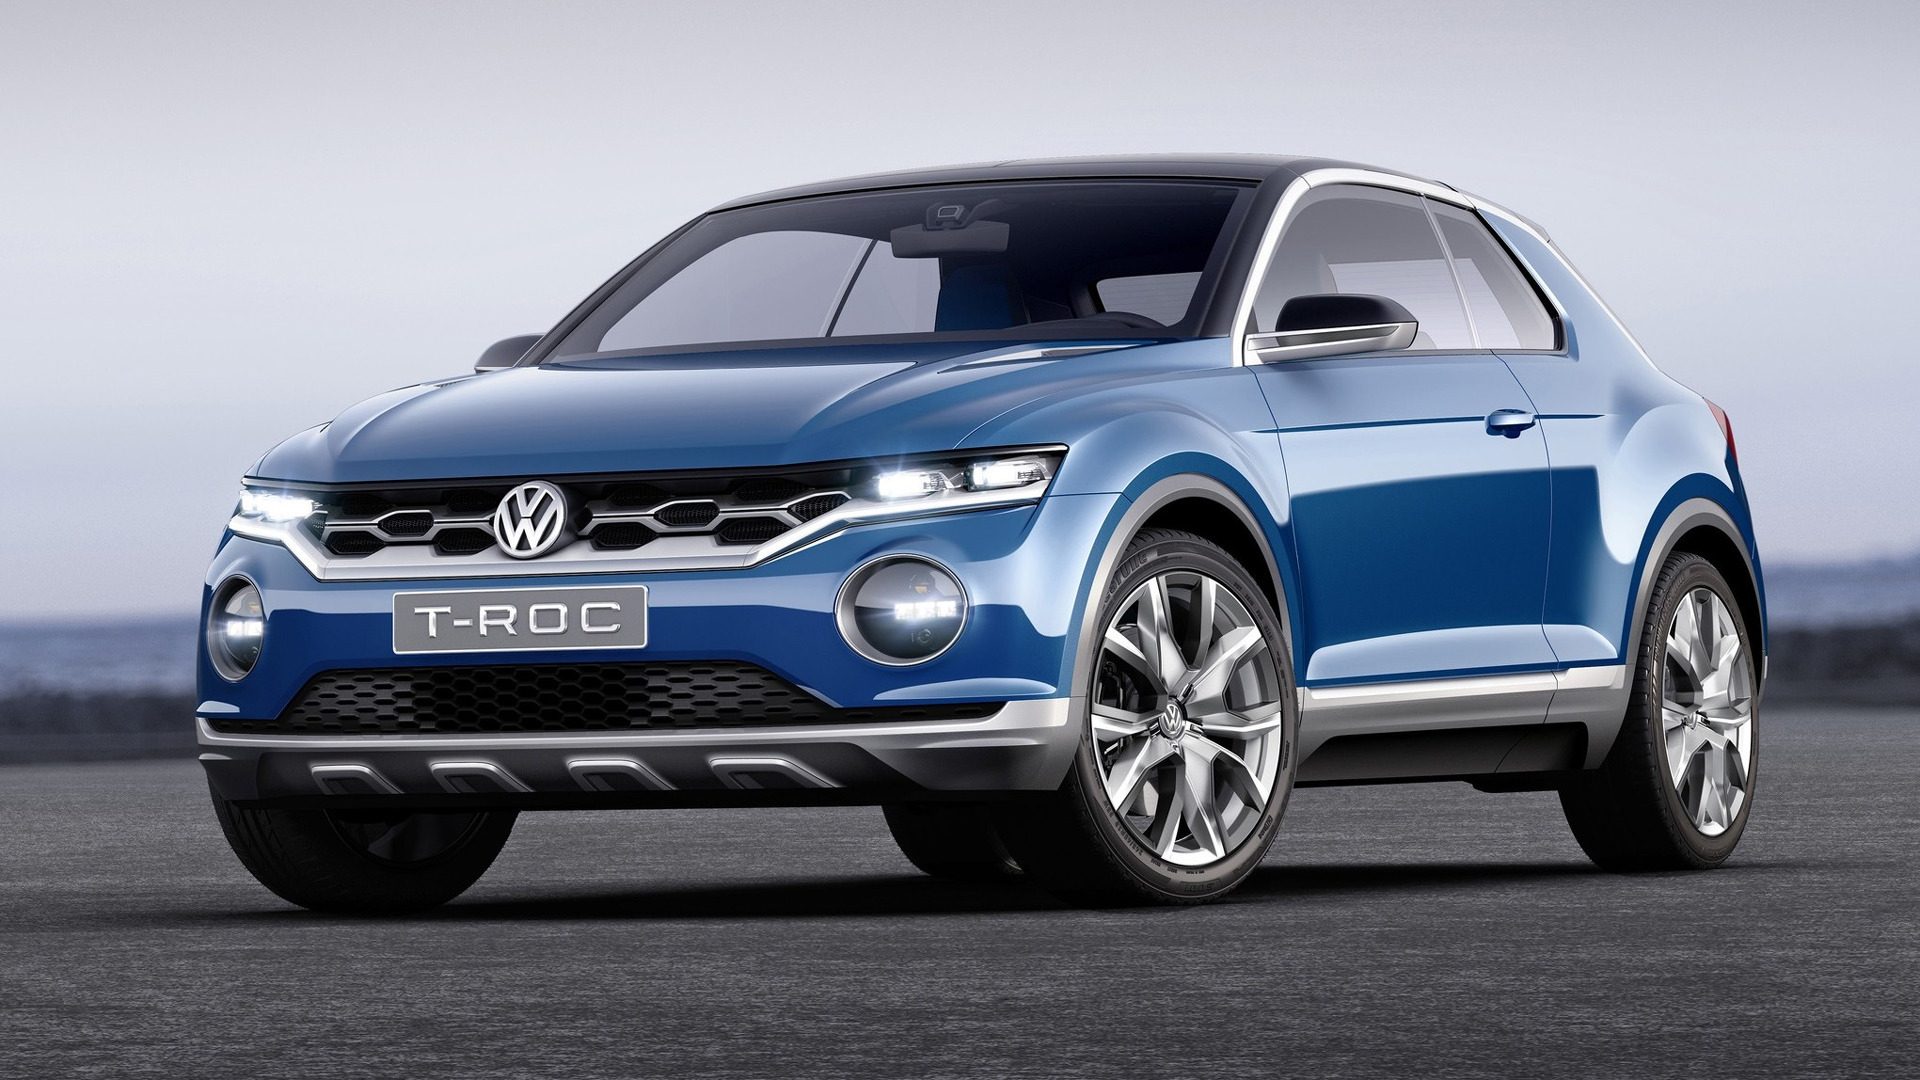 Vw T Roc Compact Crossover Set For 2019 Launch In U S